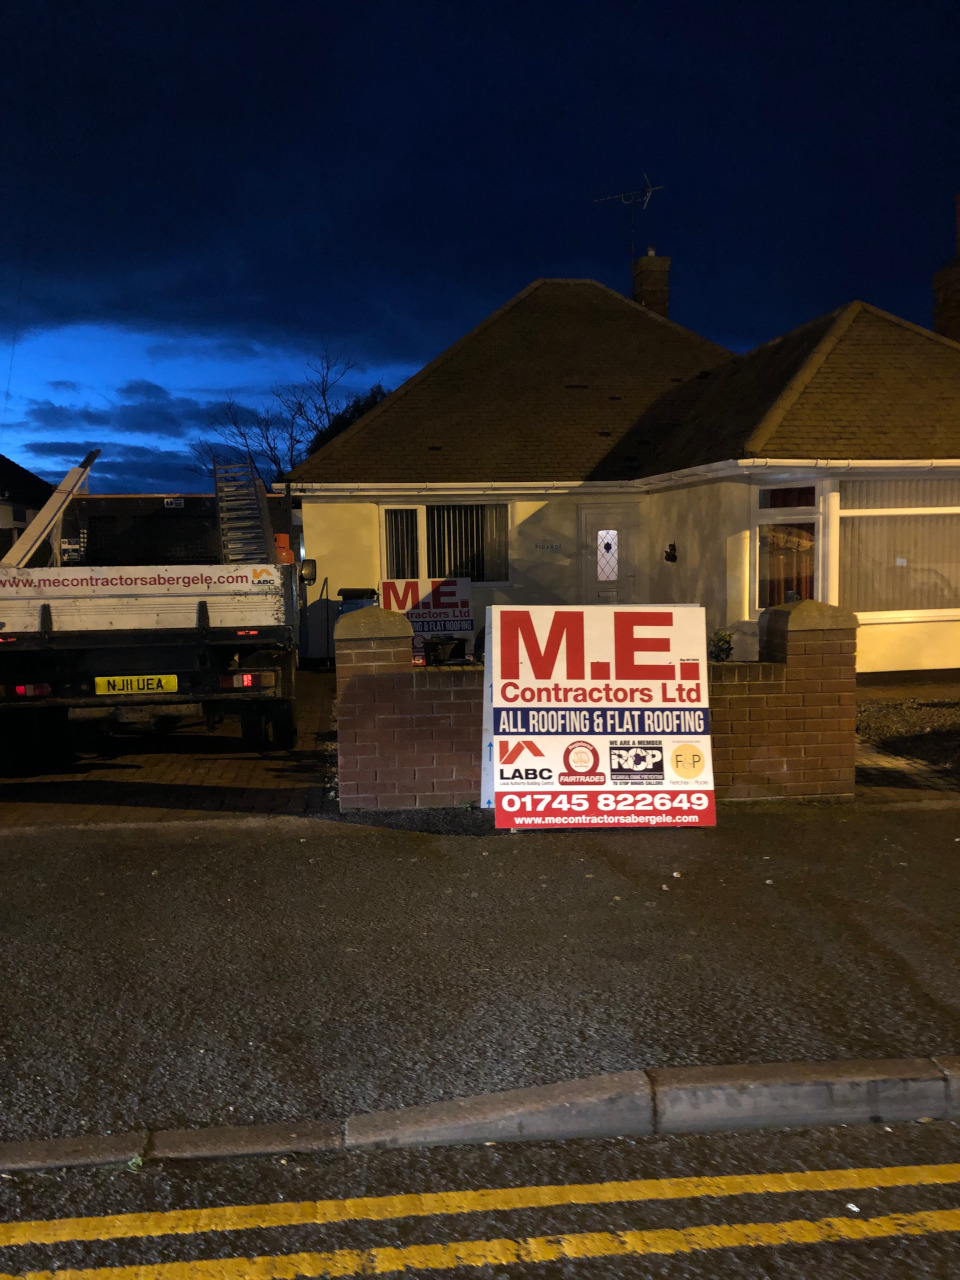 Tile roof repairs in Conwy.